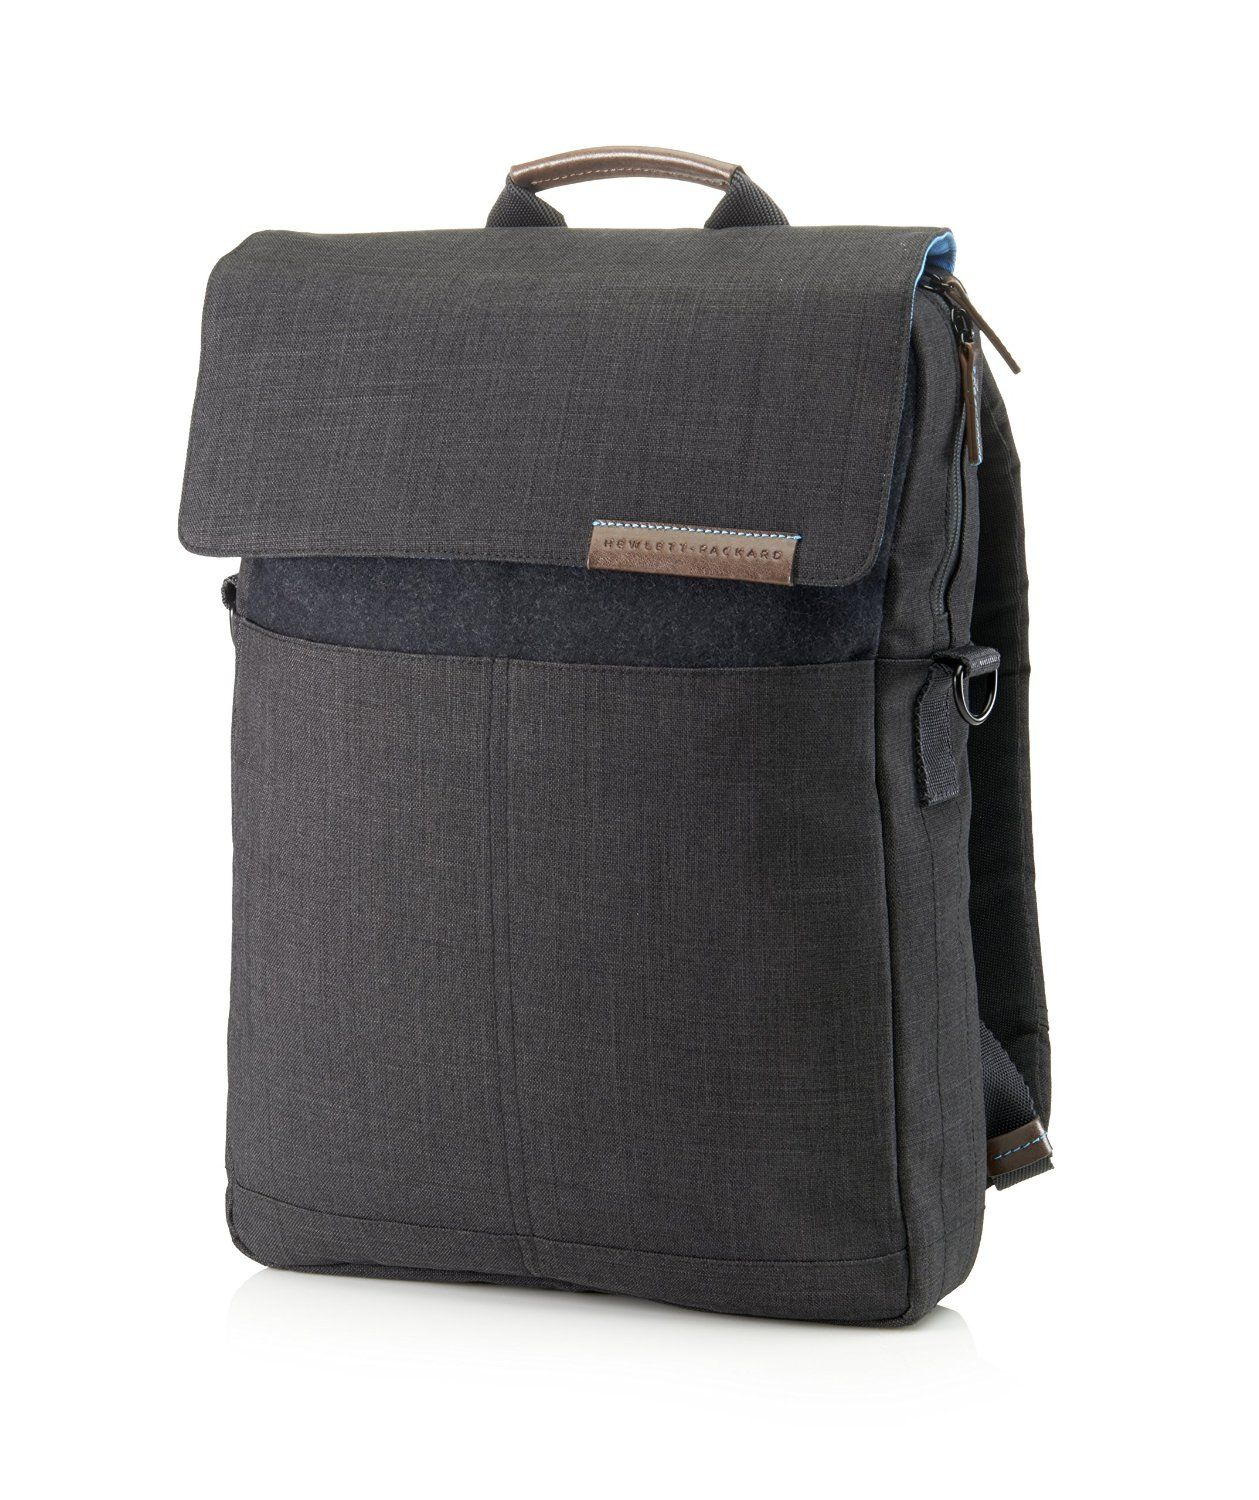 0a4700ae36 Amazon.com  HP Premium Backpack  Computers   Accessories